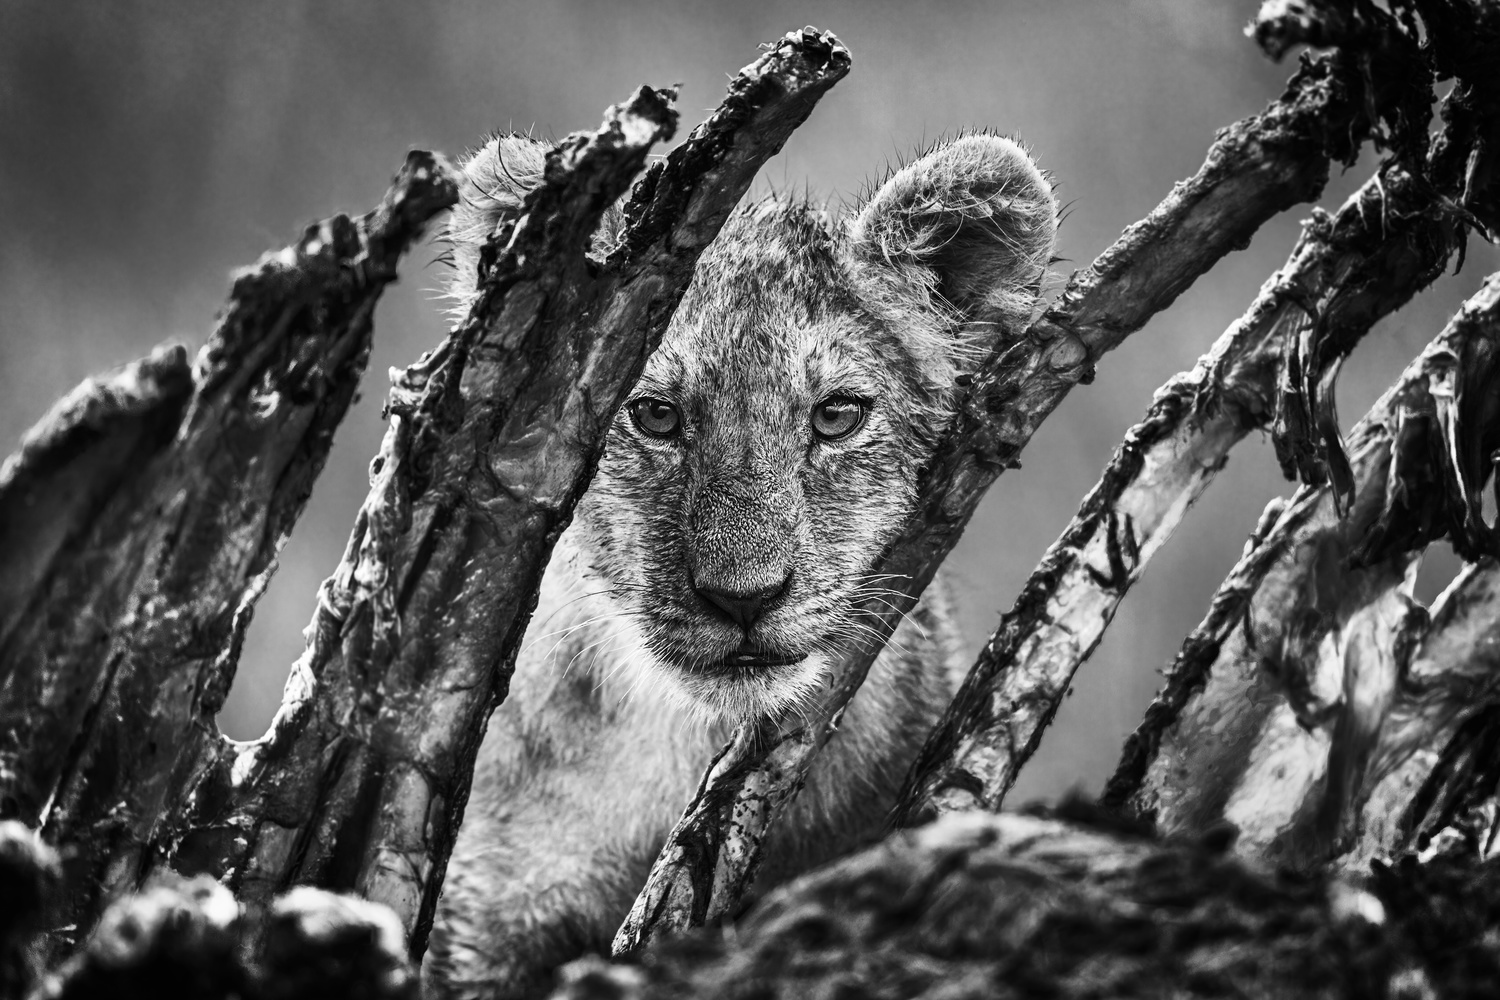 Lion cub likes ribs. by Martin Wagner